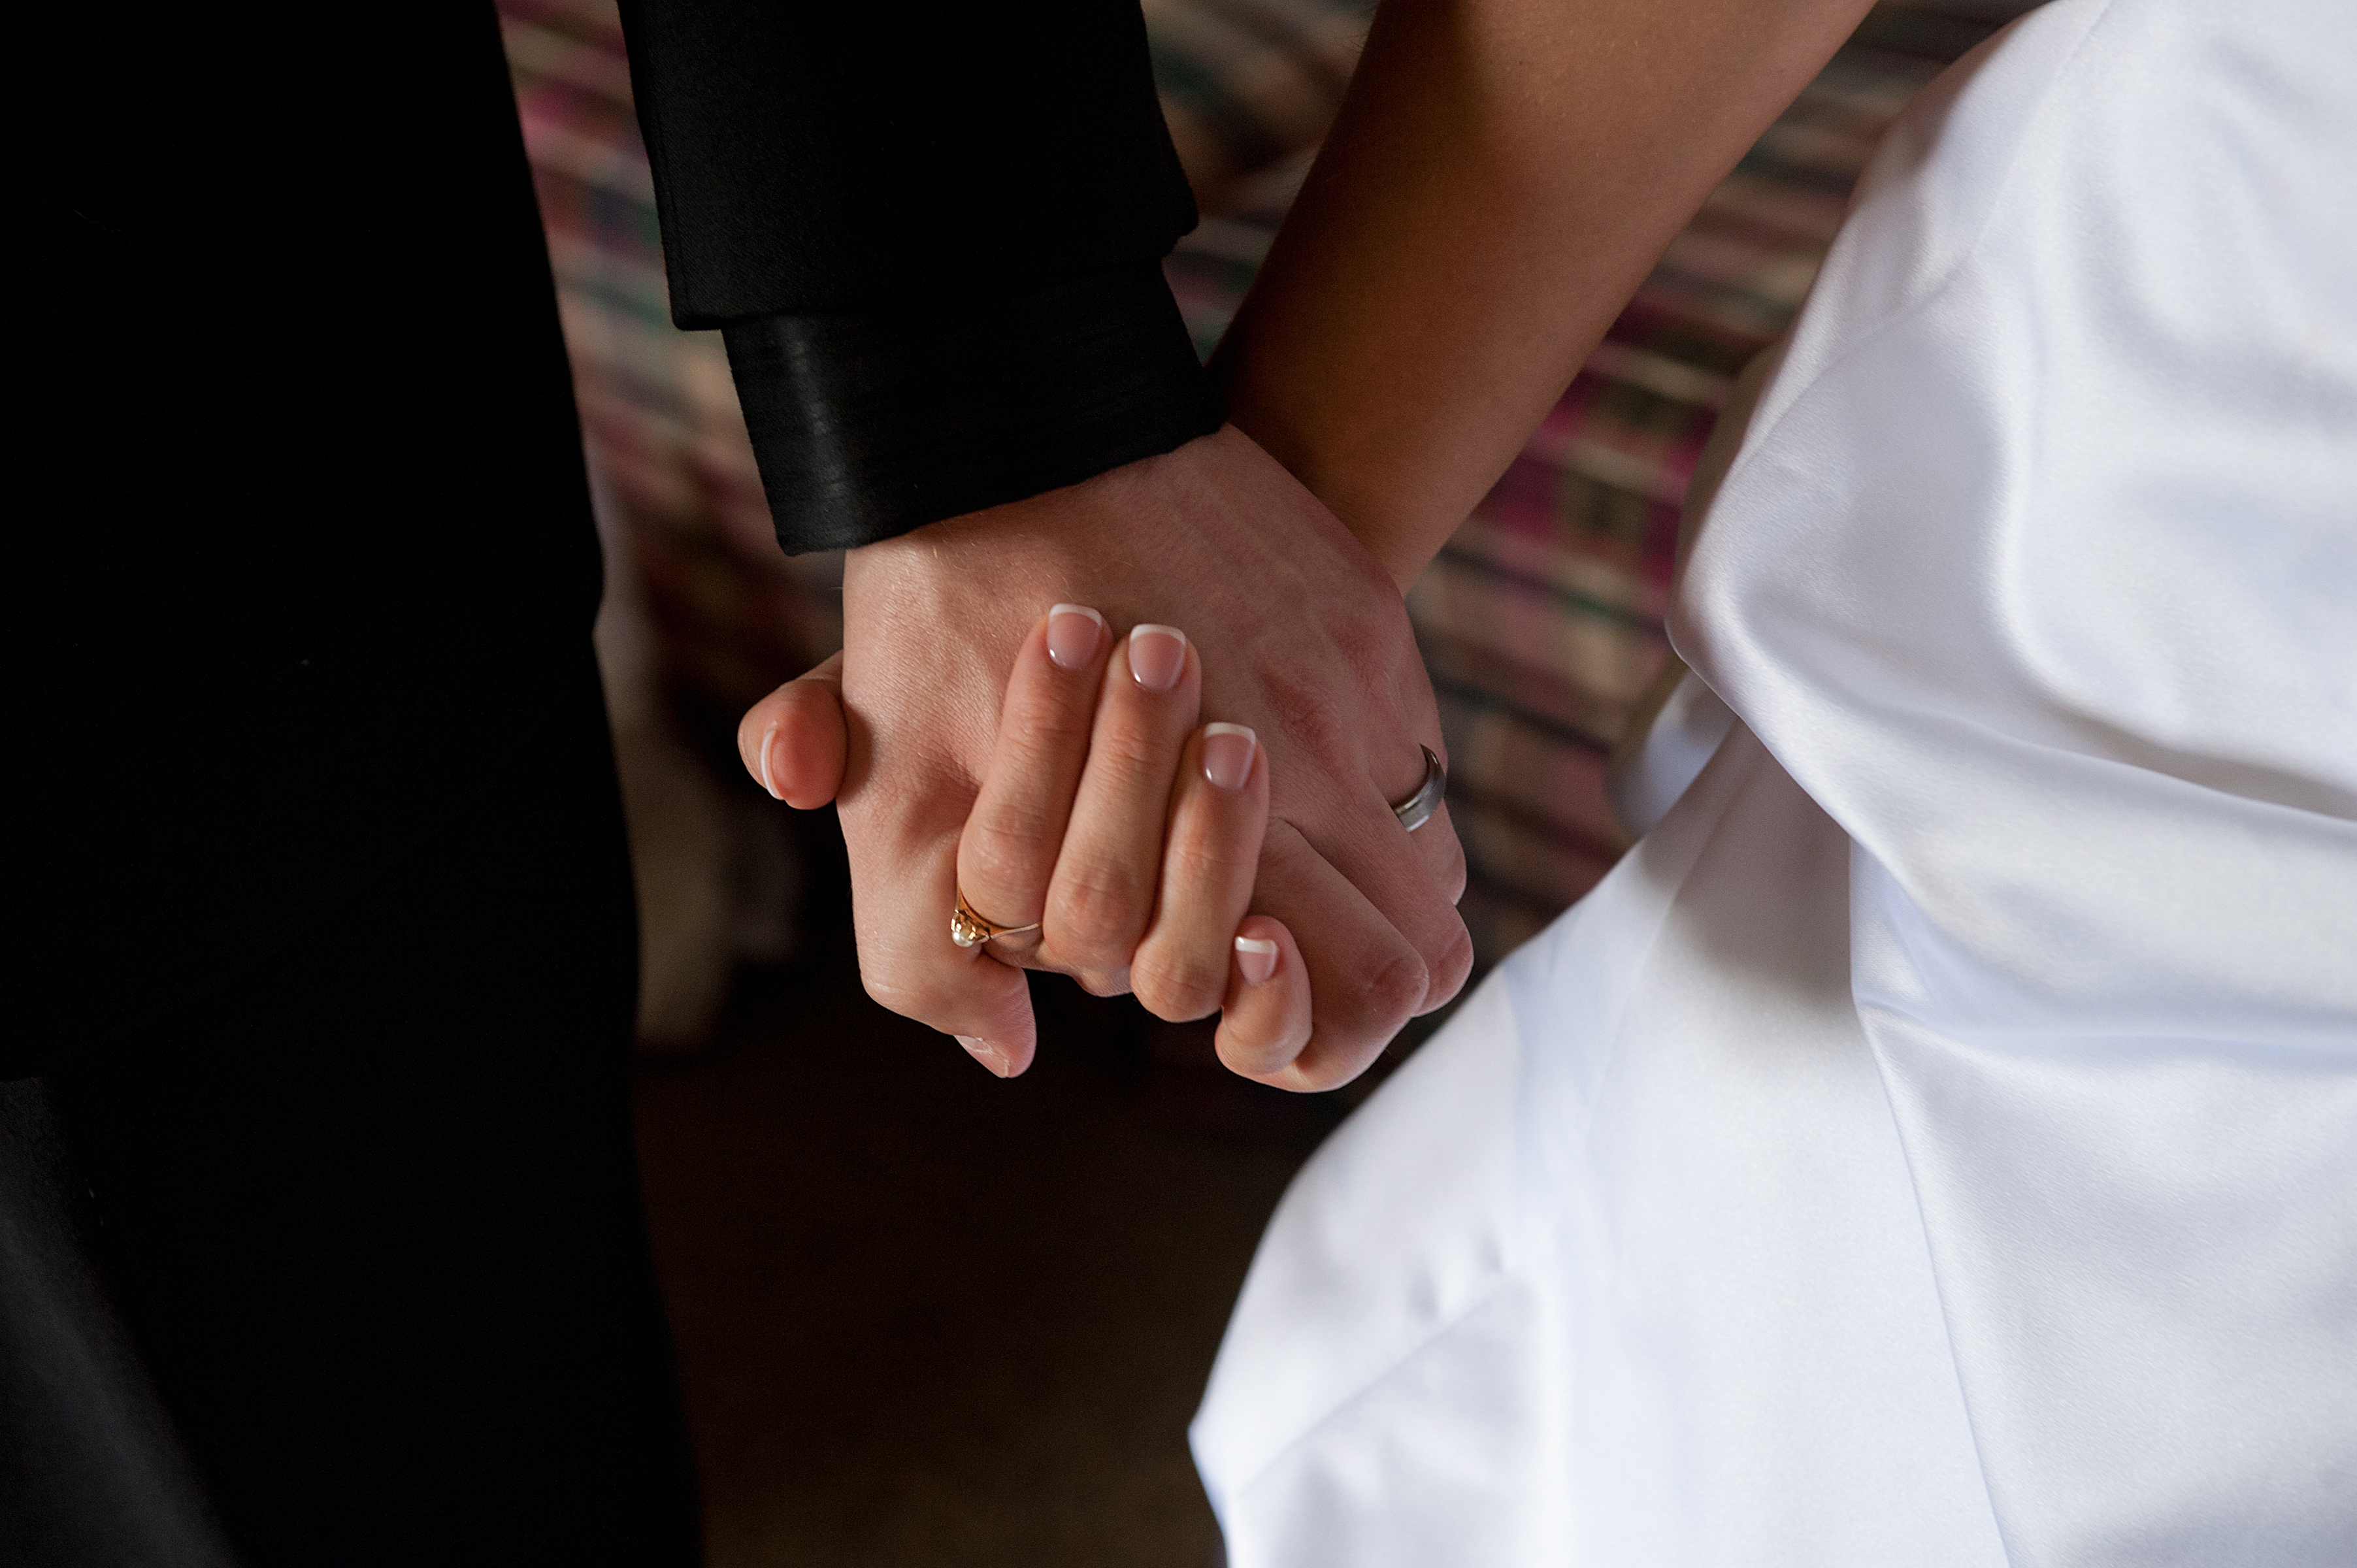 GROOM, BRIDE HOLD HANDS ON THEIR WEDDING DAY